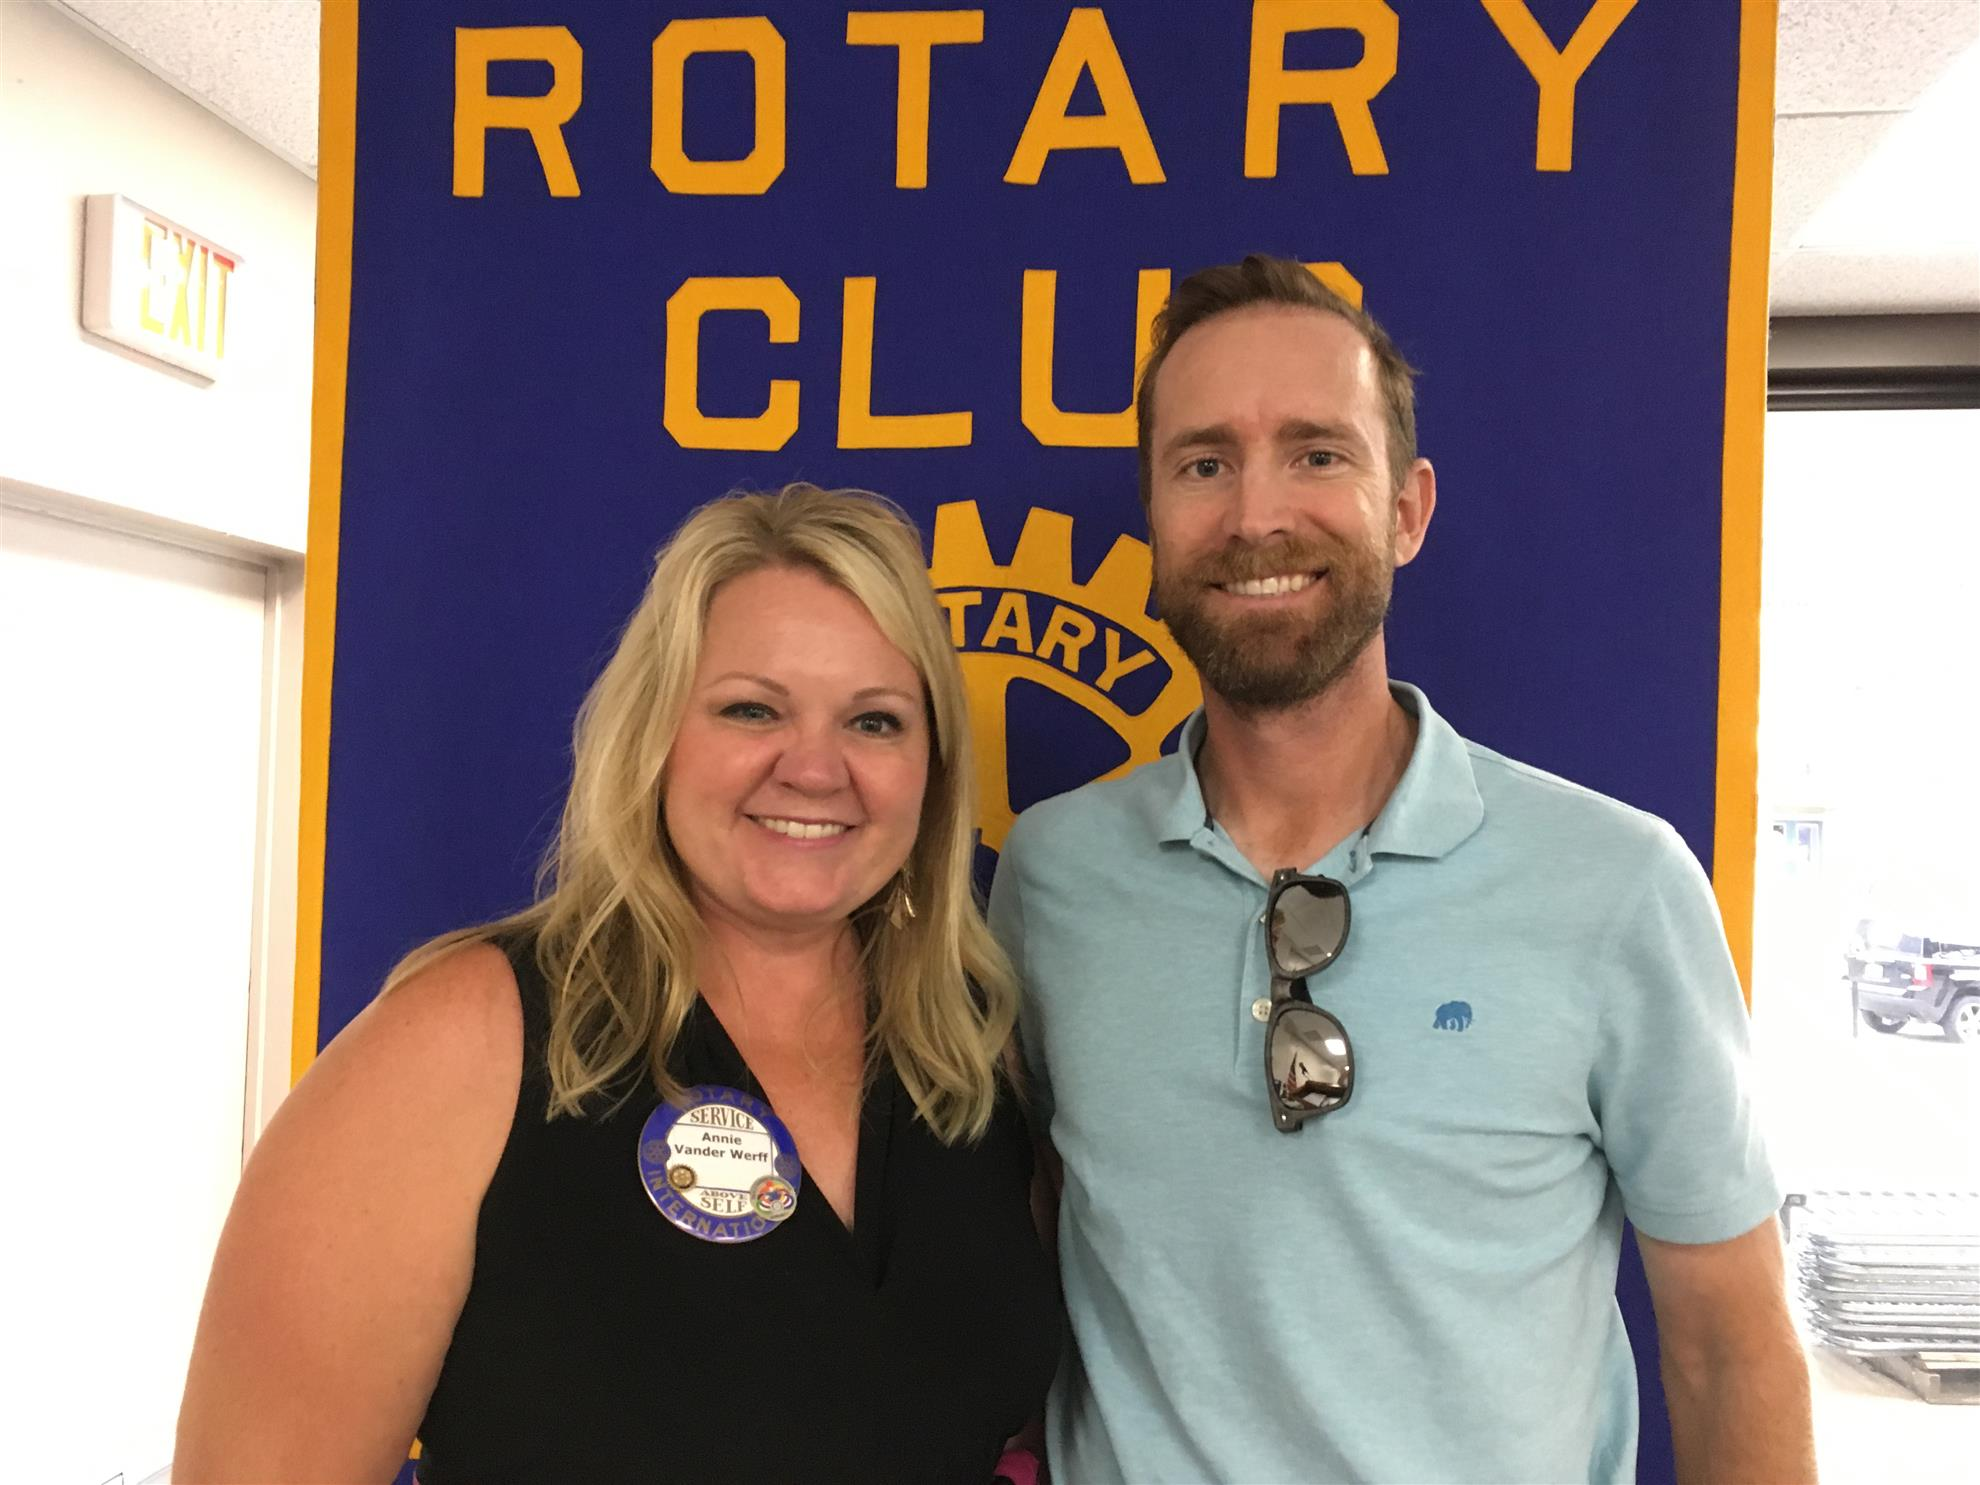 Stories | Rotary Club of Waterloo